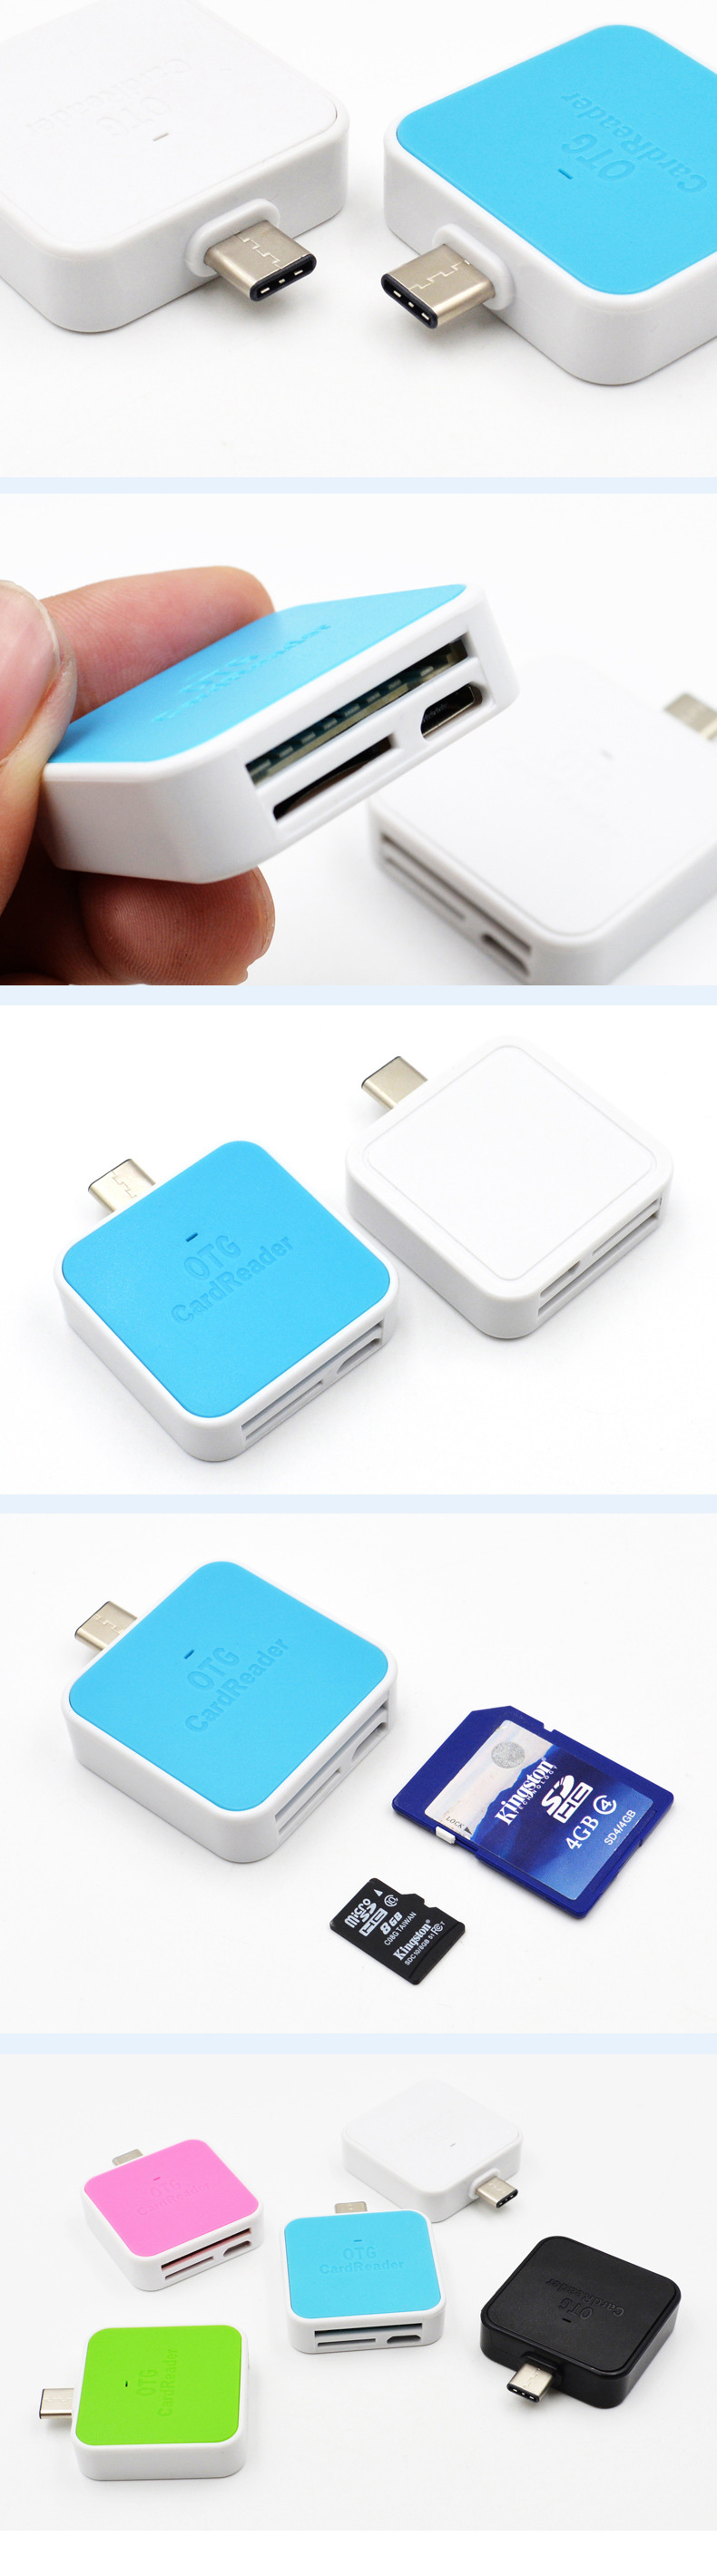 Usb-c Usb3.1 Type-c Two in one OTG Reader Adapter Support SD / TF / iOS for New Mac Book